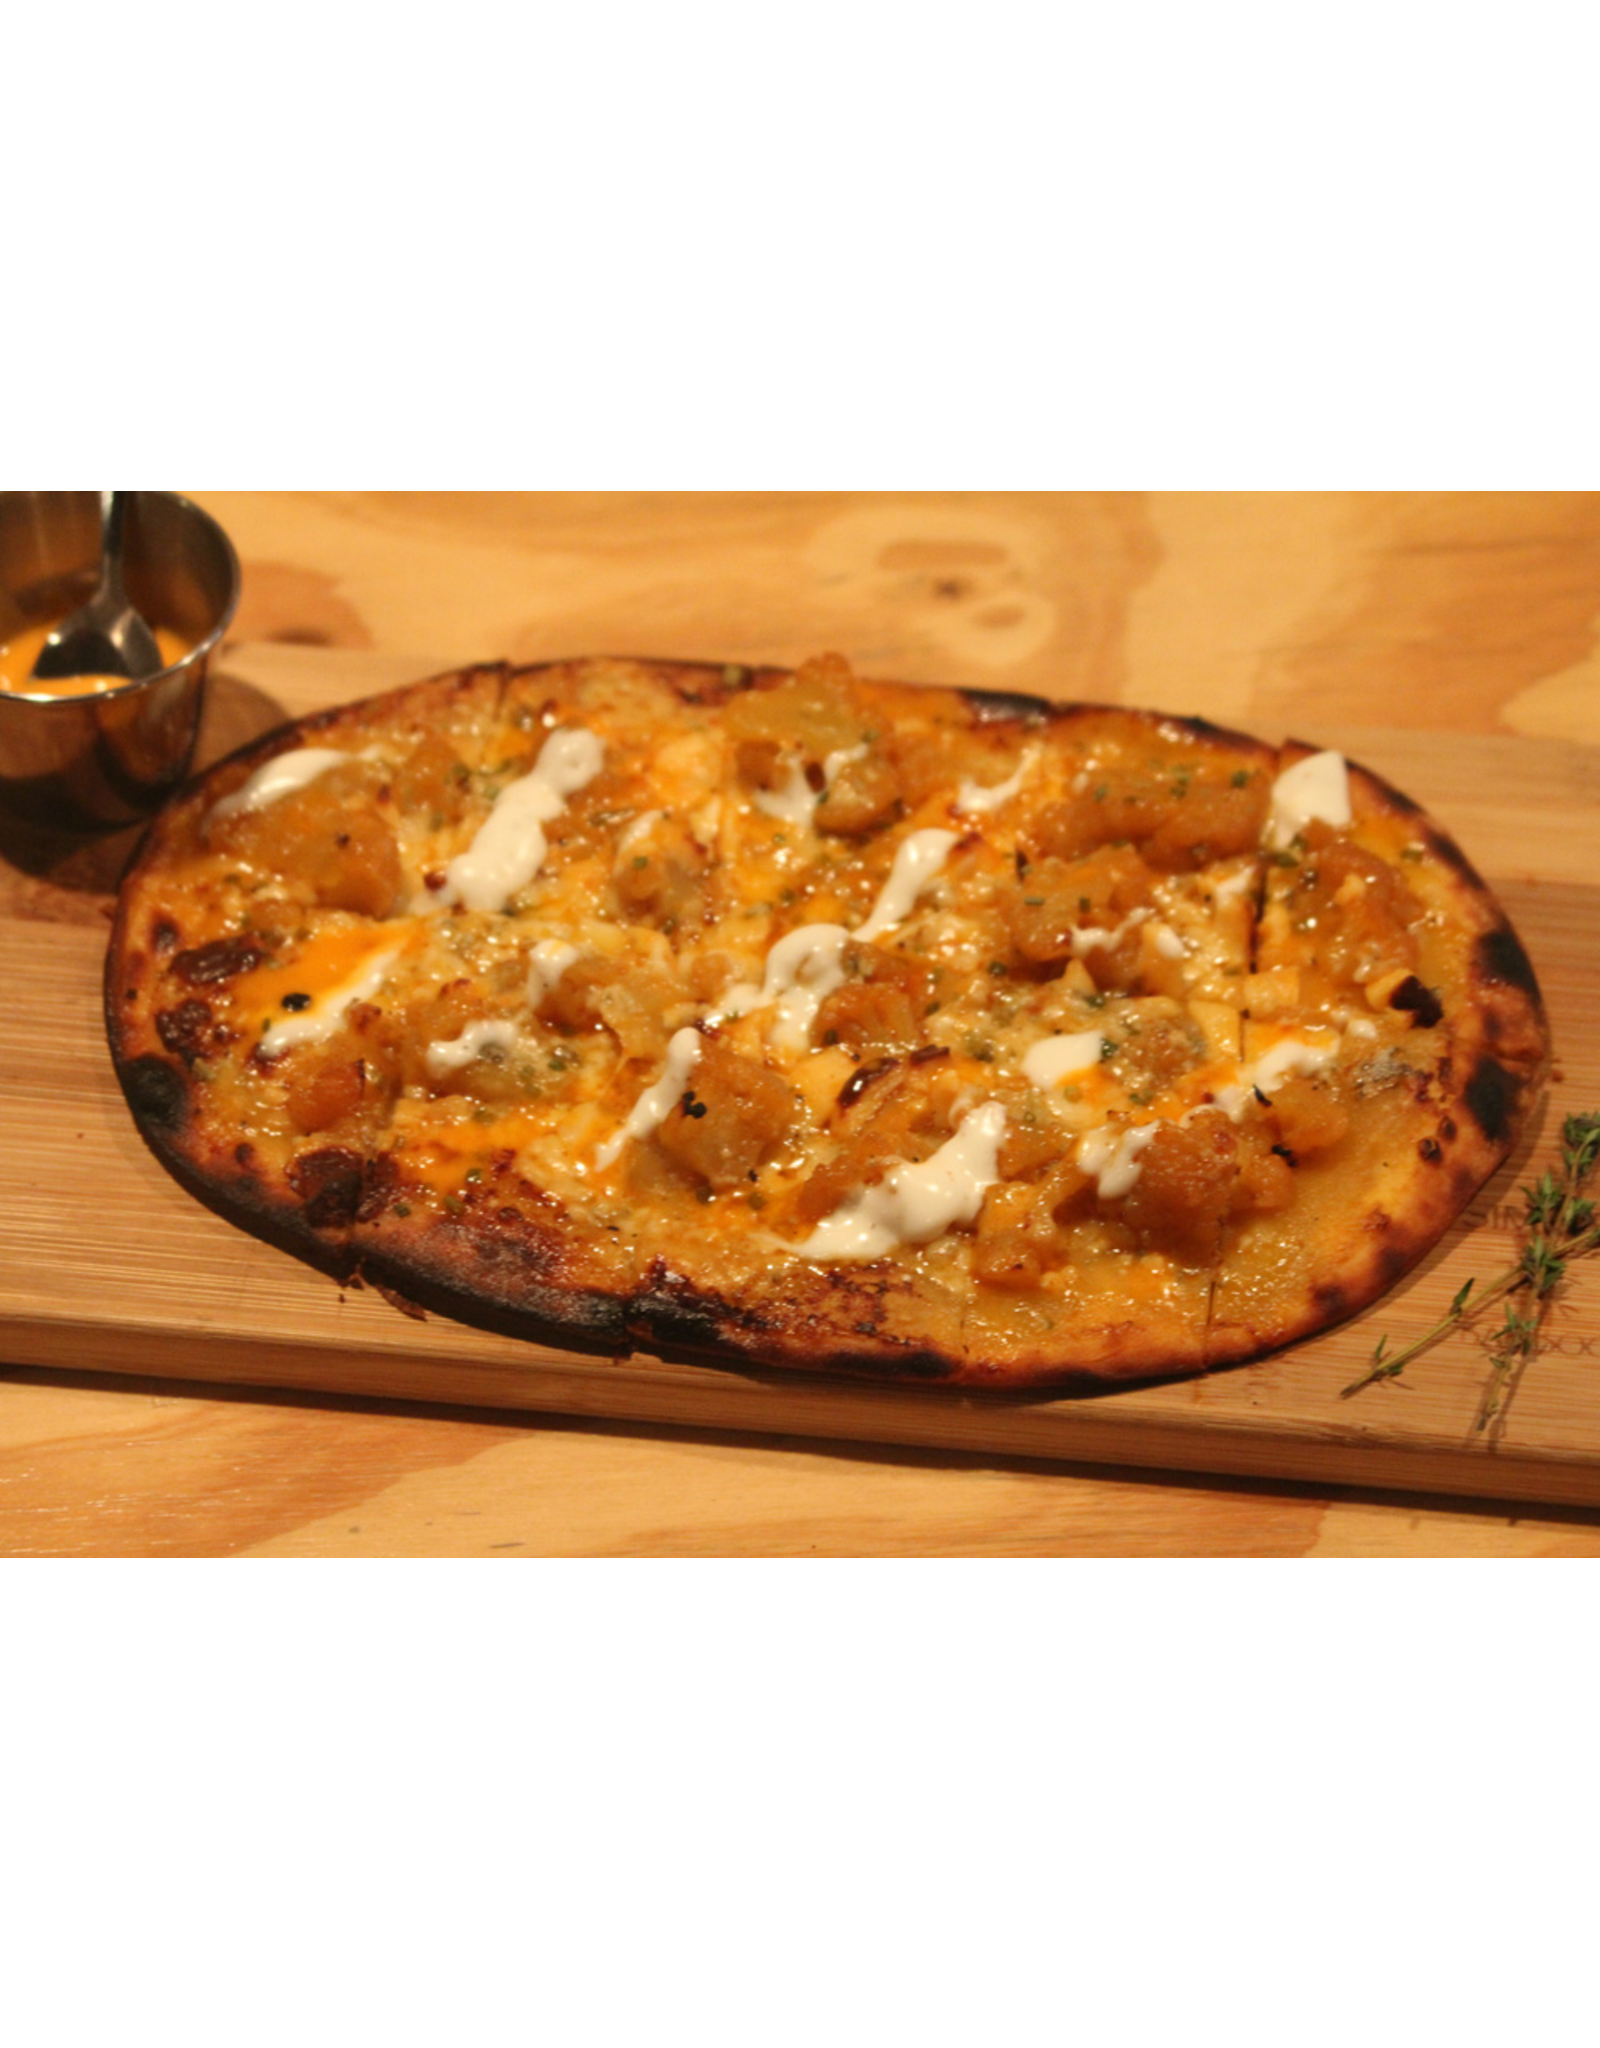 Wine Dining™ TO-GO TO-GO Buffalo Blue Cheese ~ Chefs Oven Fired Flatbread ~ Add Optional Steak Topping